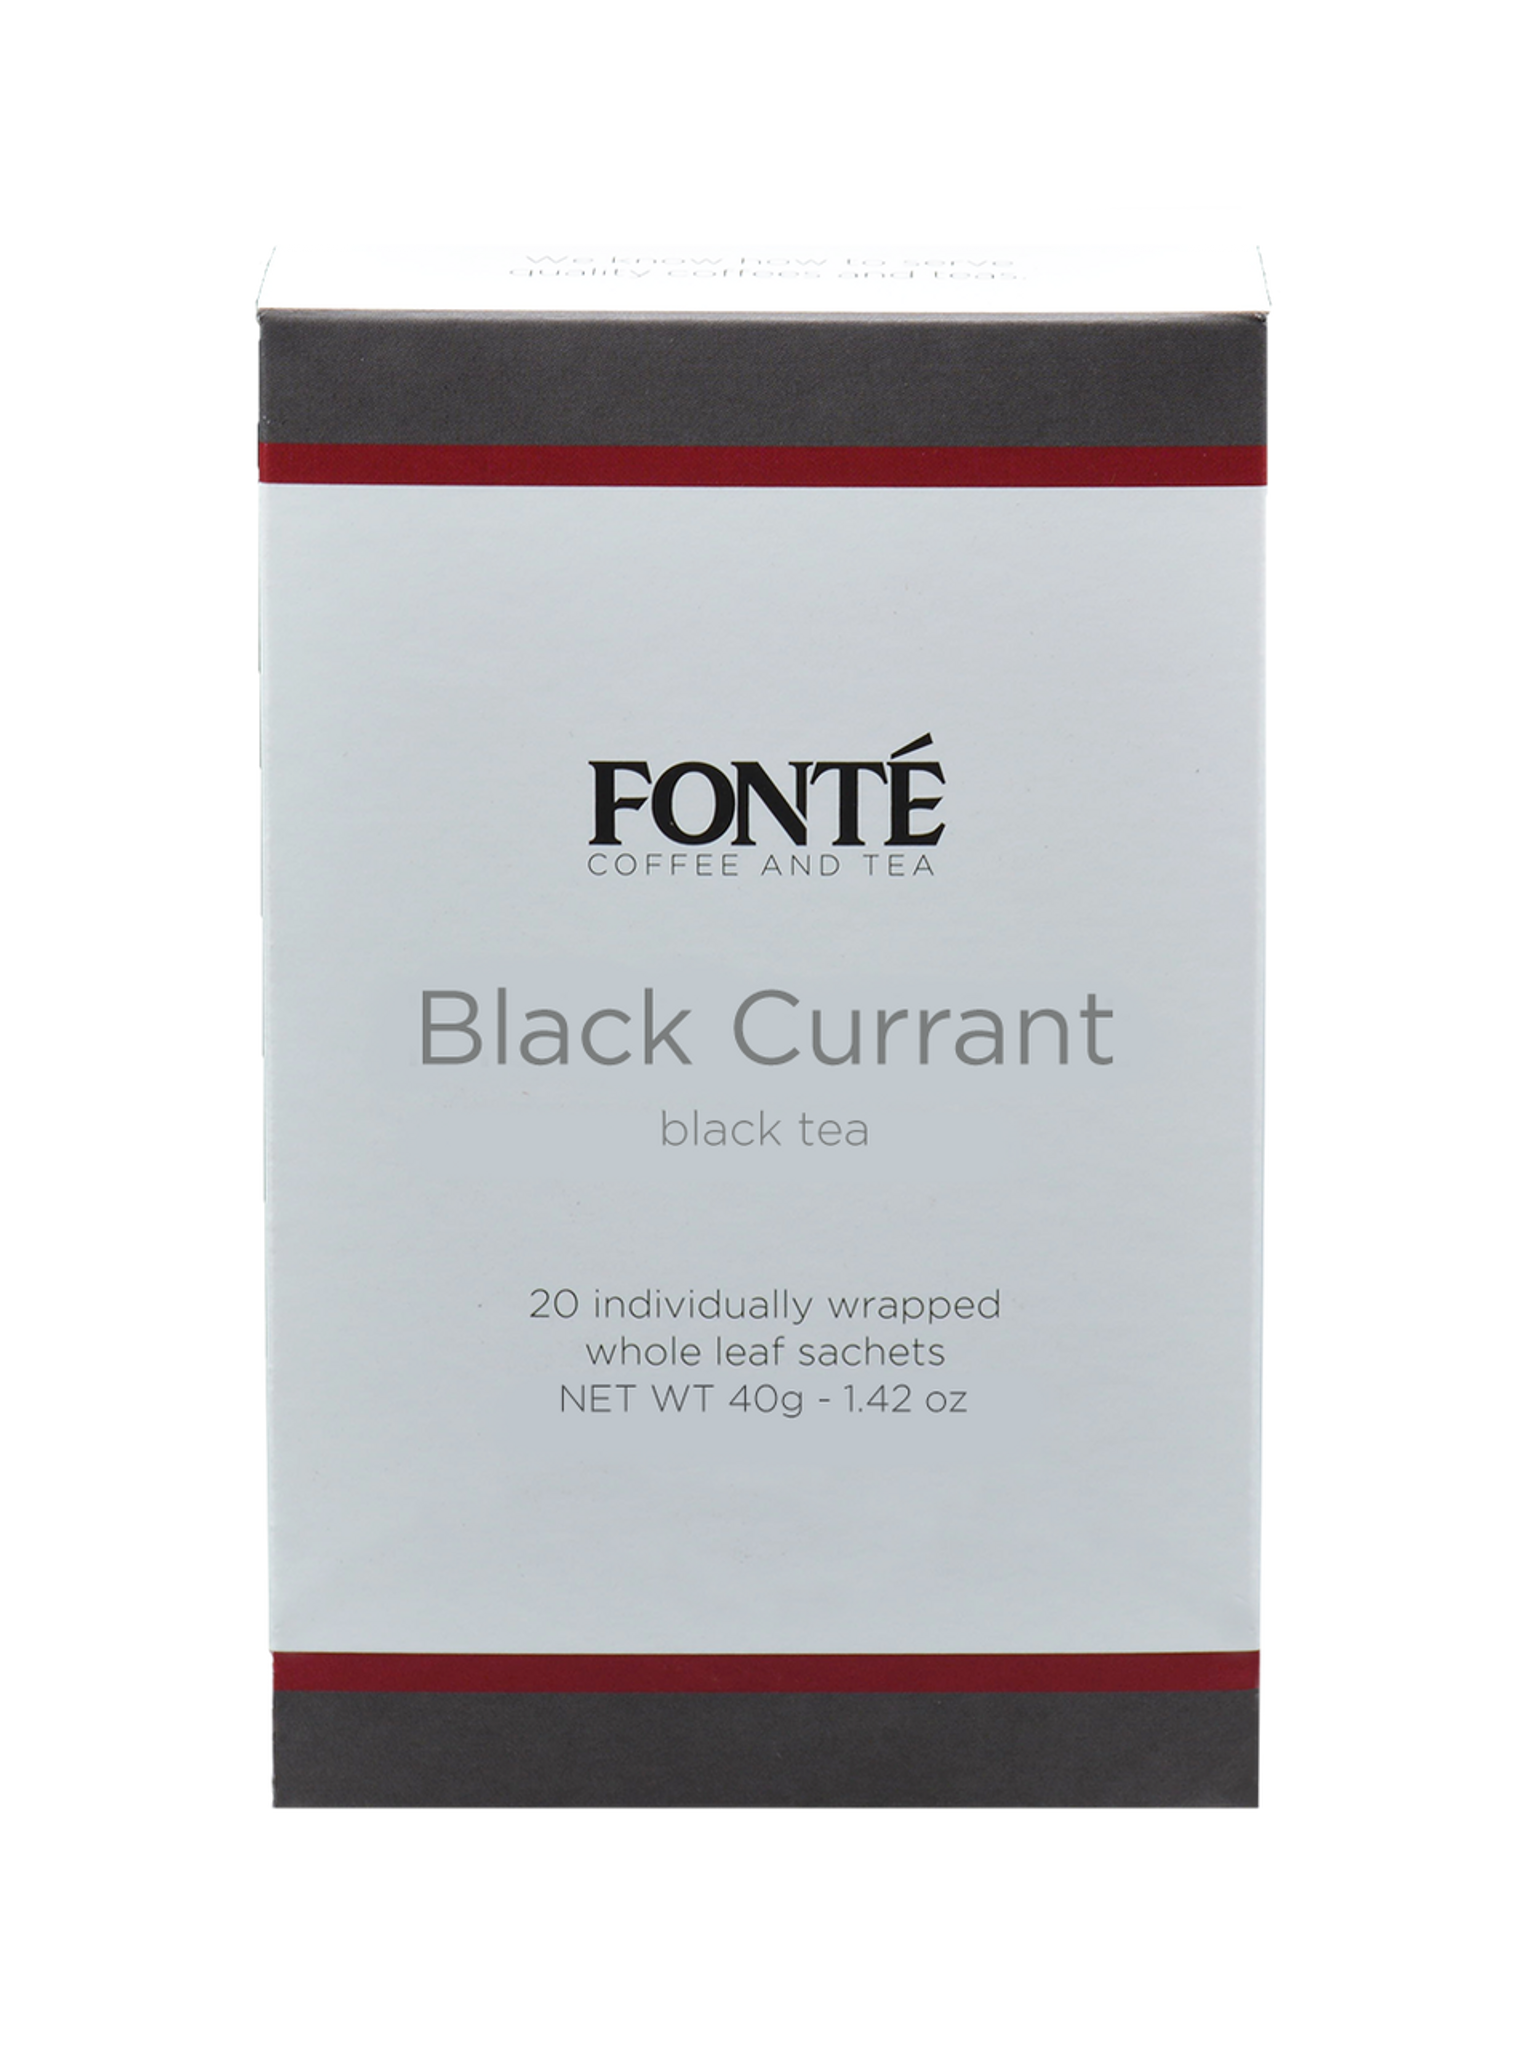 Buy Fonte Black Currant Specialty Black Tea Available for Weekly, Biweekly, Monthly or Bimonthly Subscriptions